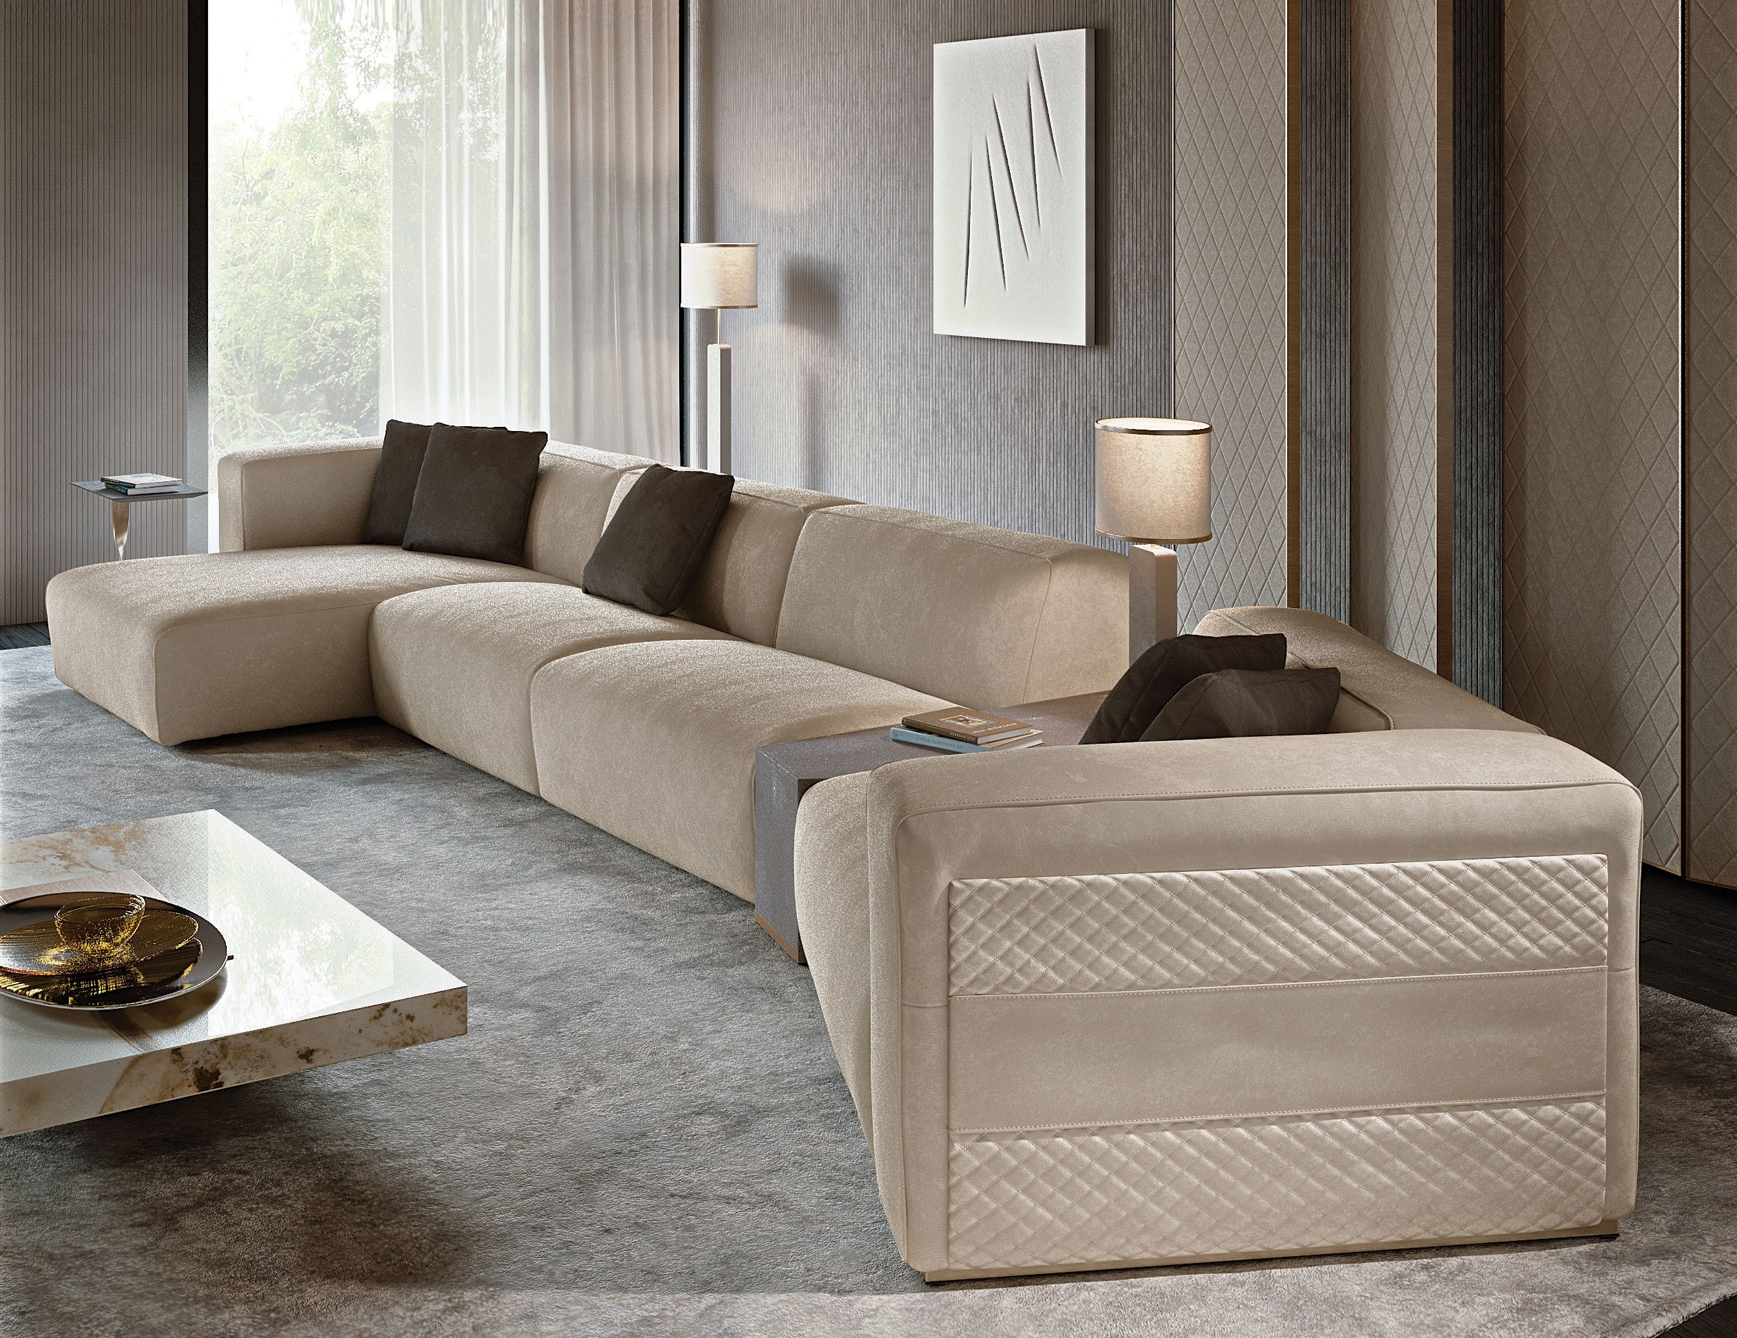 Best And Newest Nella Vetrina Rugiano Freud Sectional Sofa In Suede Pertaining To High End Sectional Sofas (View 3 of 15)